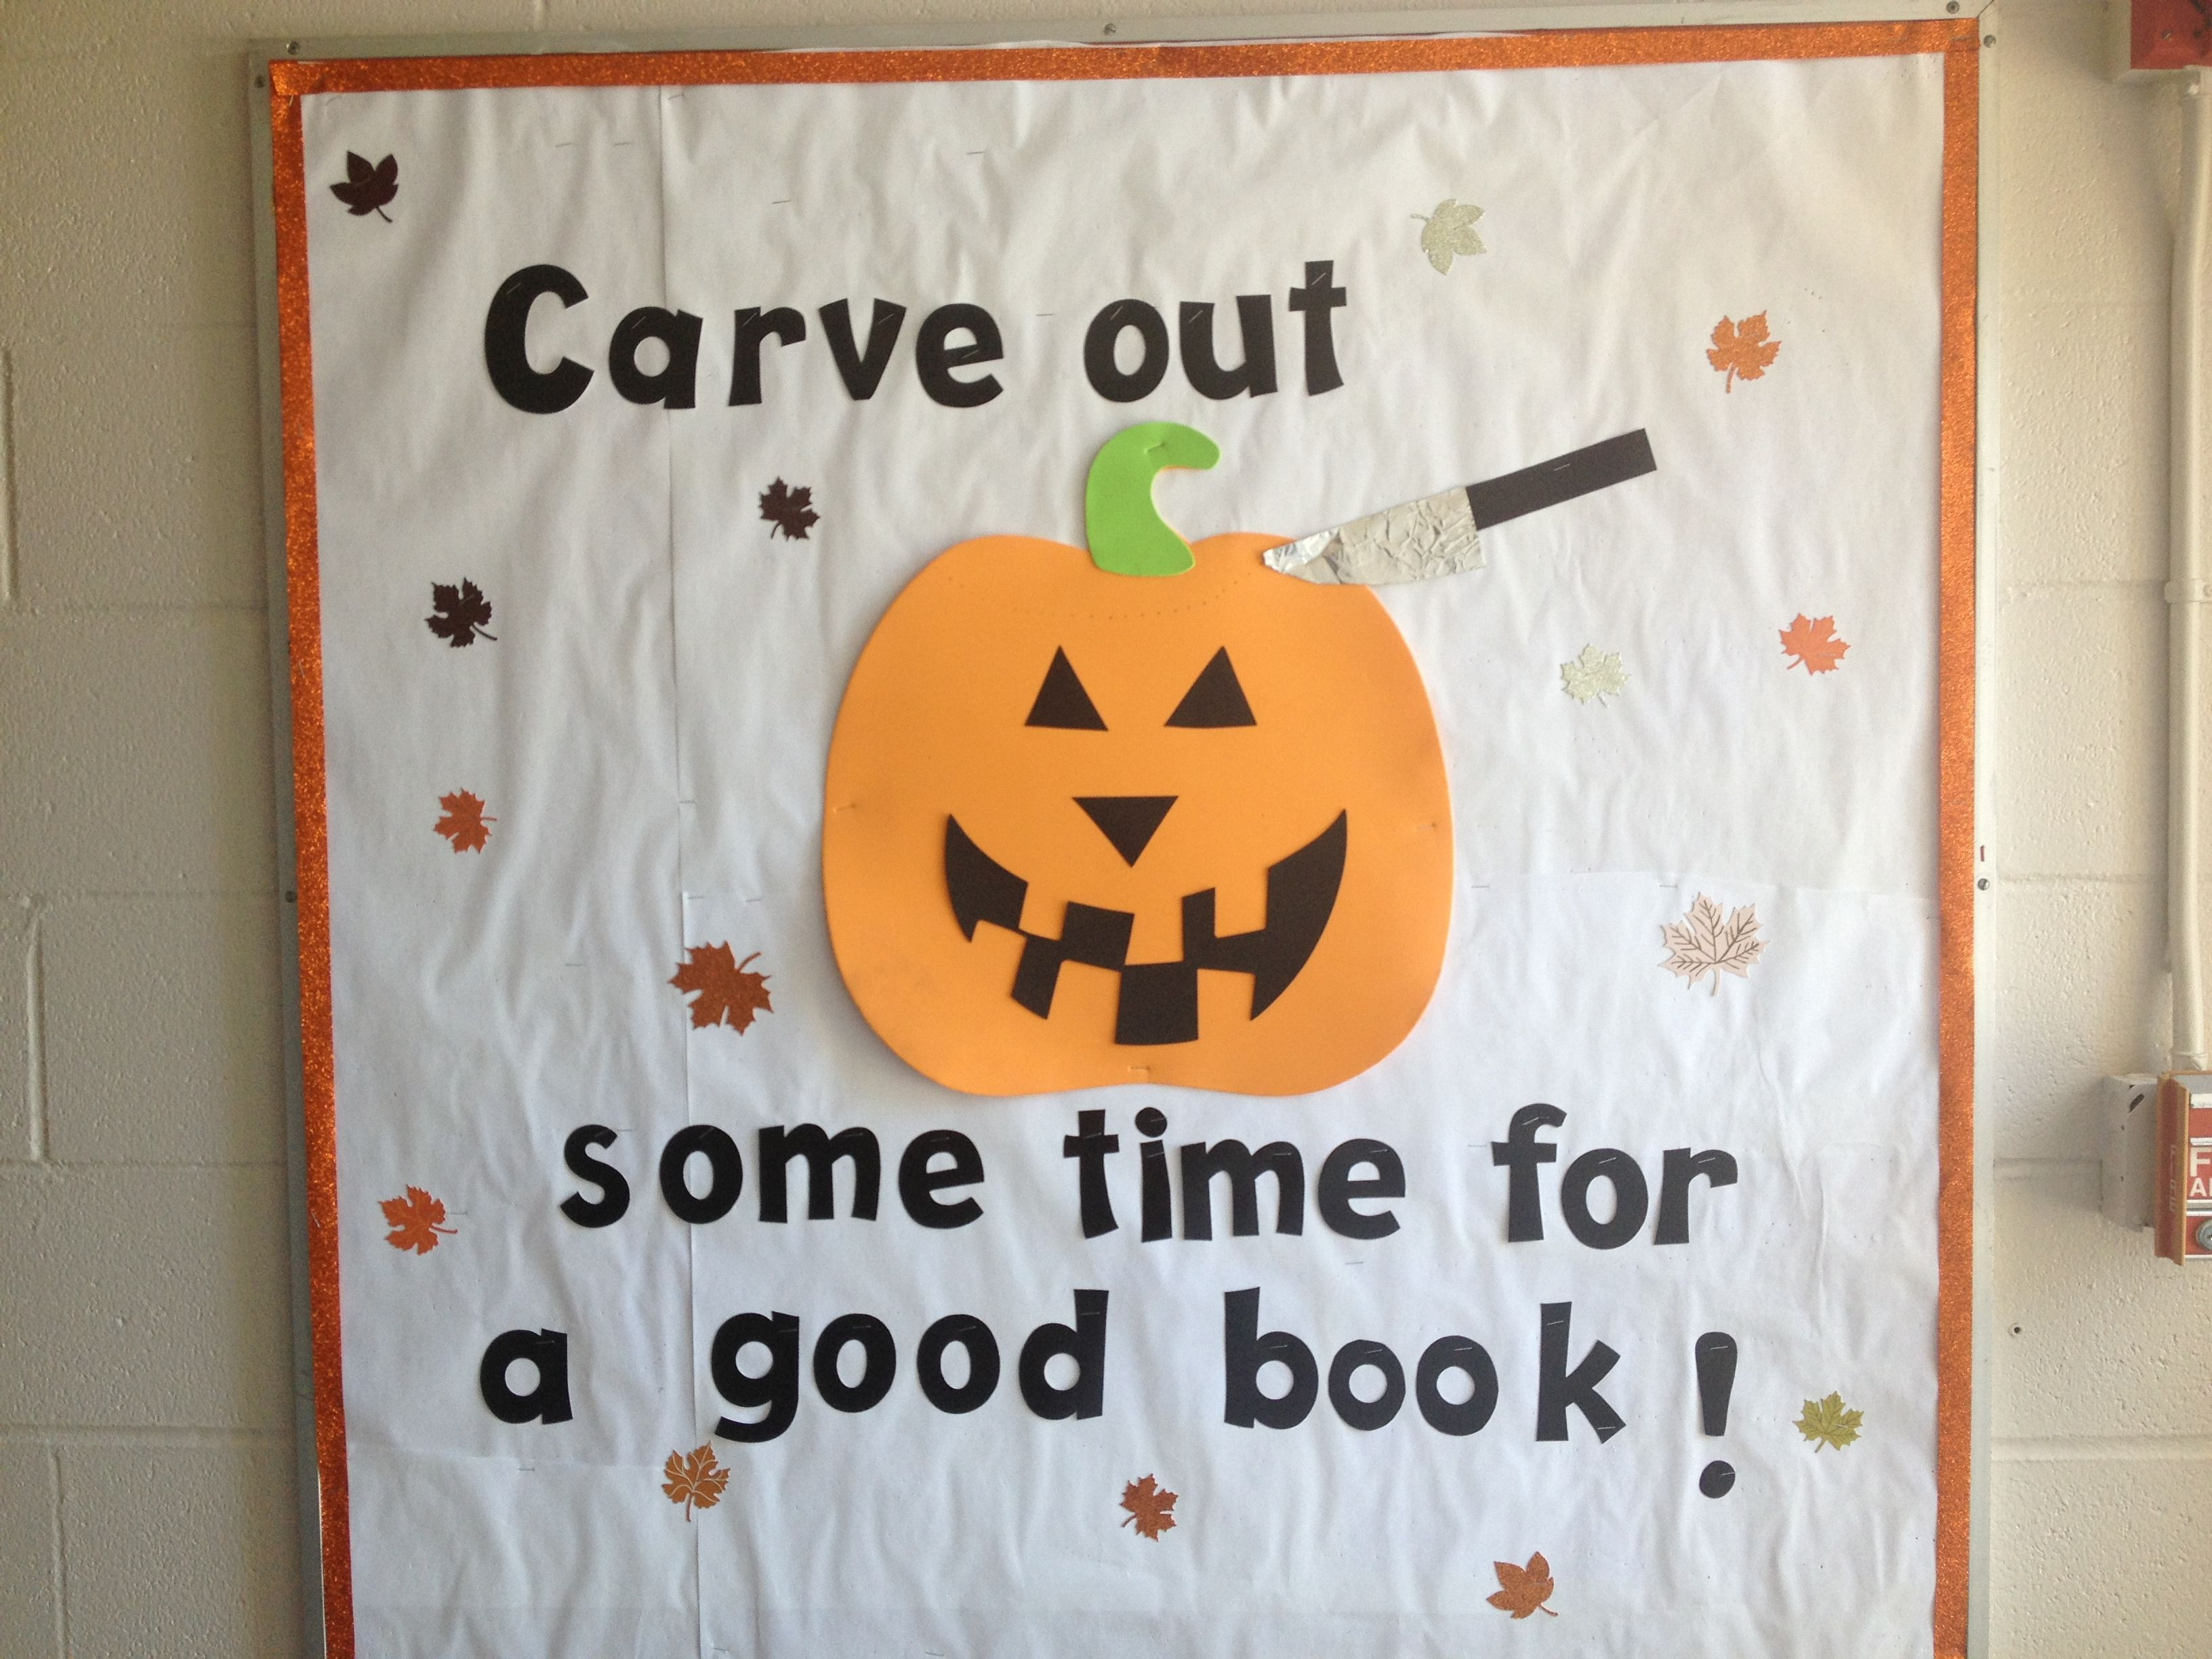 Halloween bulletin board - library #halloweenbulletinboards Halloween bulletin board - library #halloweenbulletinboards Halloween bulletin board - library #halloweenbulletinboards Halloween bulletin board - library #halloweenbulletinboards Halloween bulletin board - library #halloweenbulletinboards Halloween bulletin board - library #halloweenbulletinboards Halloween bulletin board - library #halloweenbulletinboards Halloween bulletin board - library #octoberbulletinboards